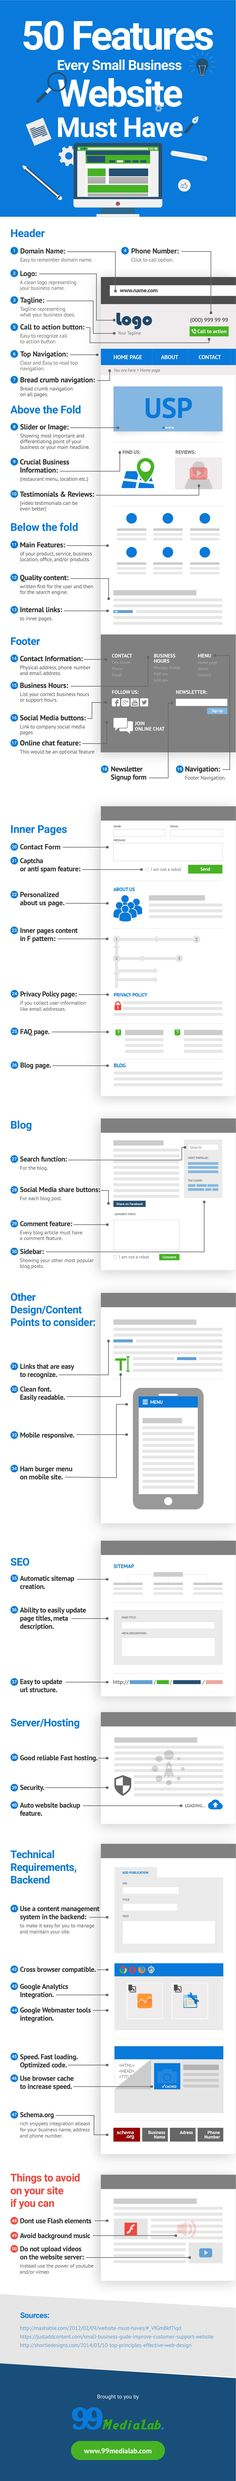 50 Features Every Small Business Website Must Have #INFOGRAPHIC #MARKETING